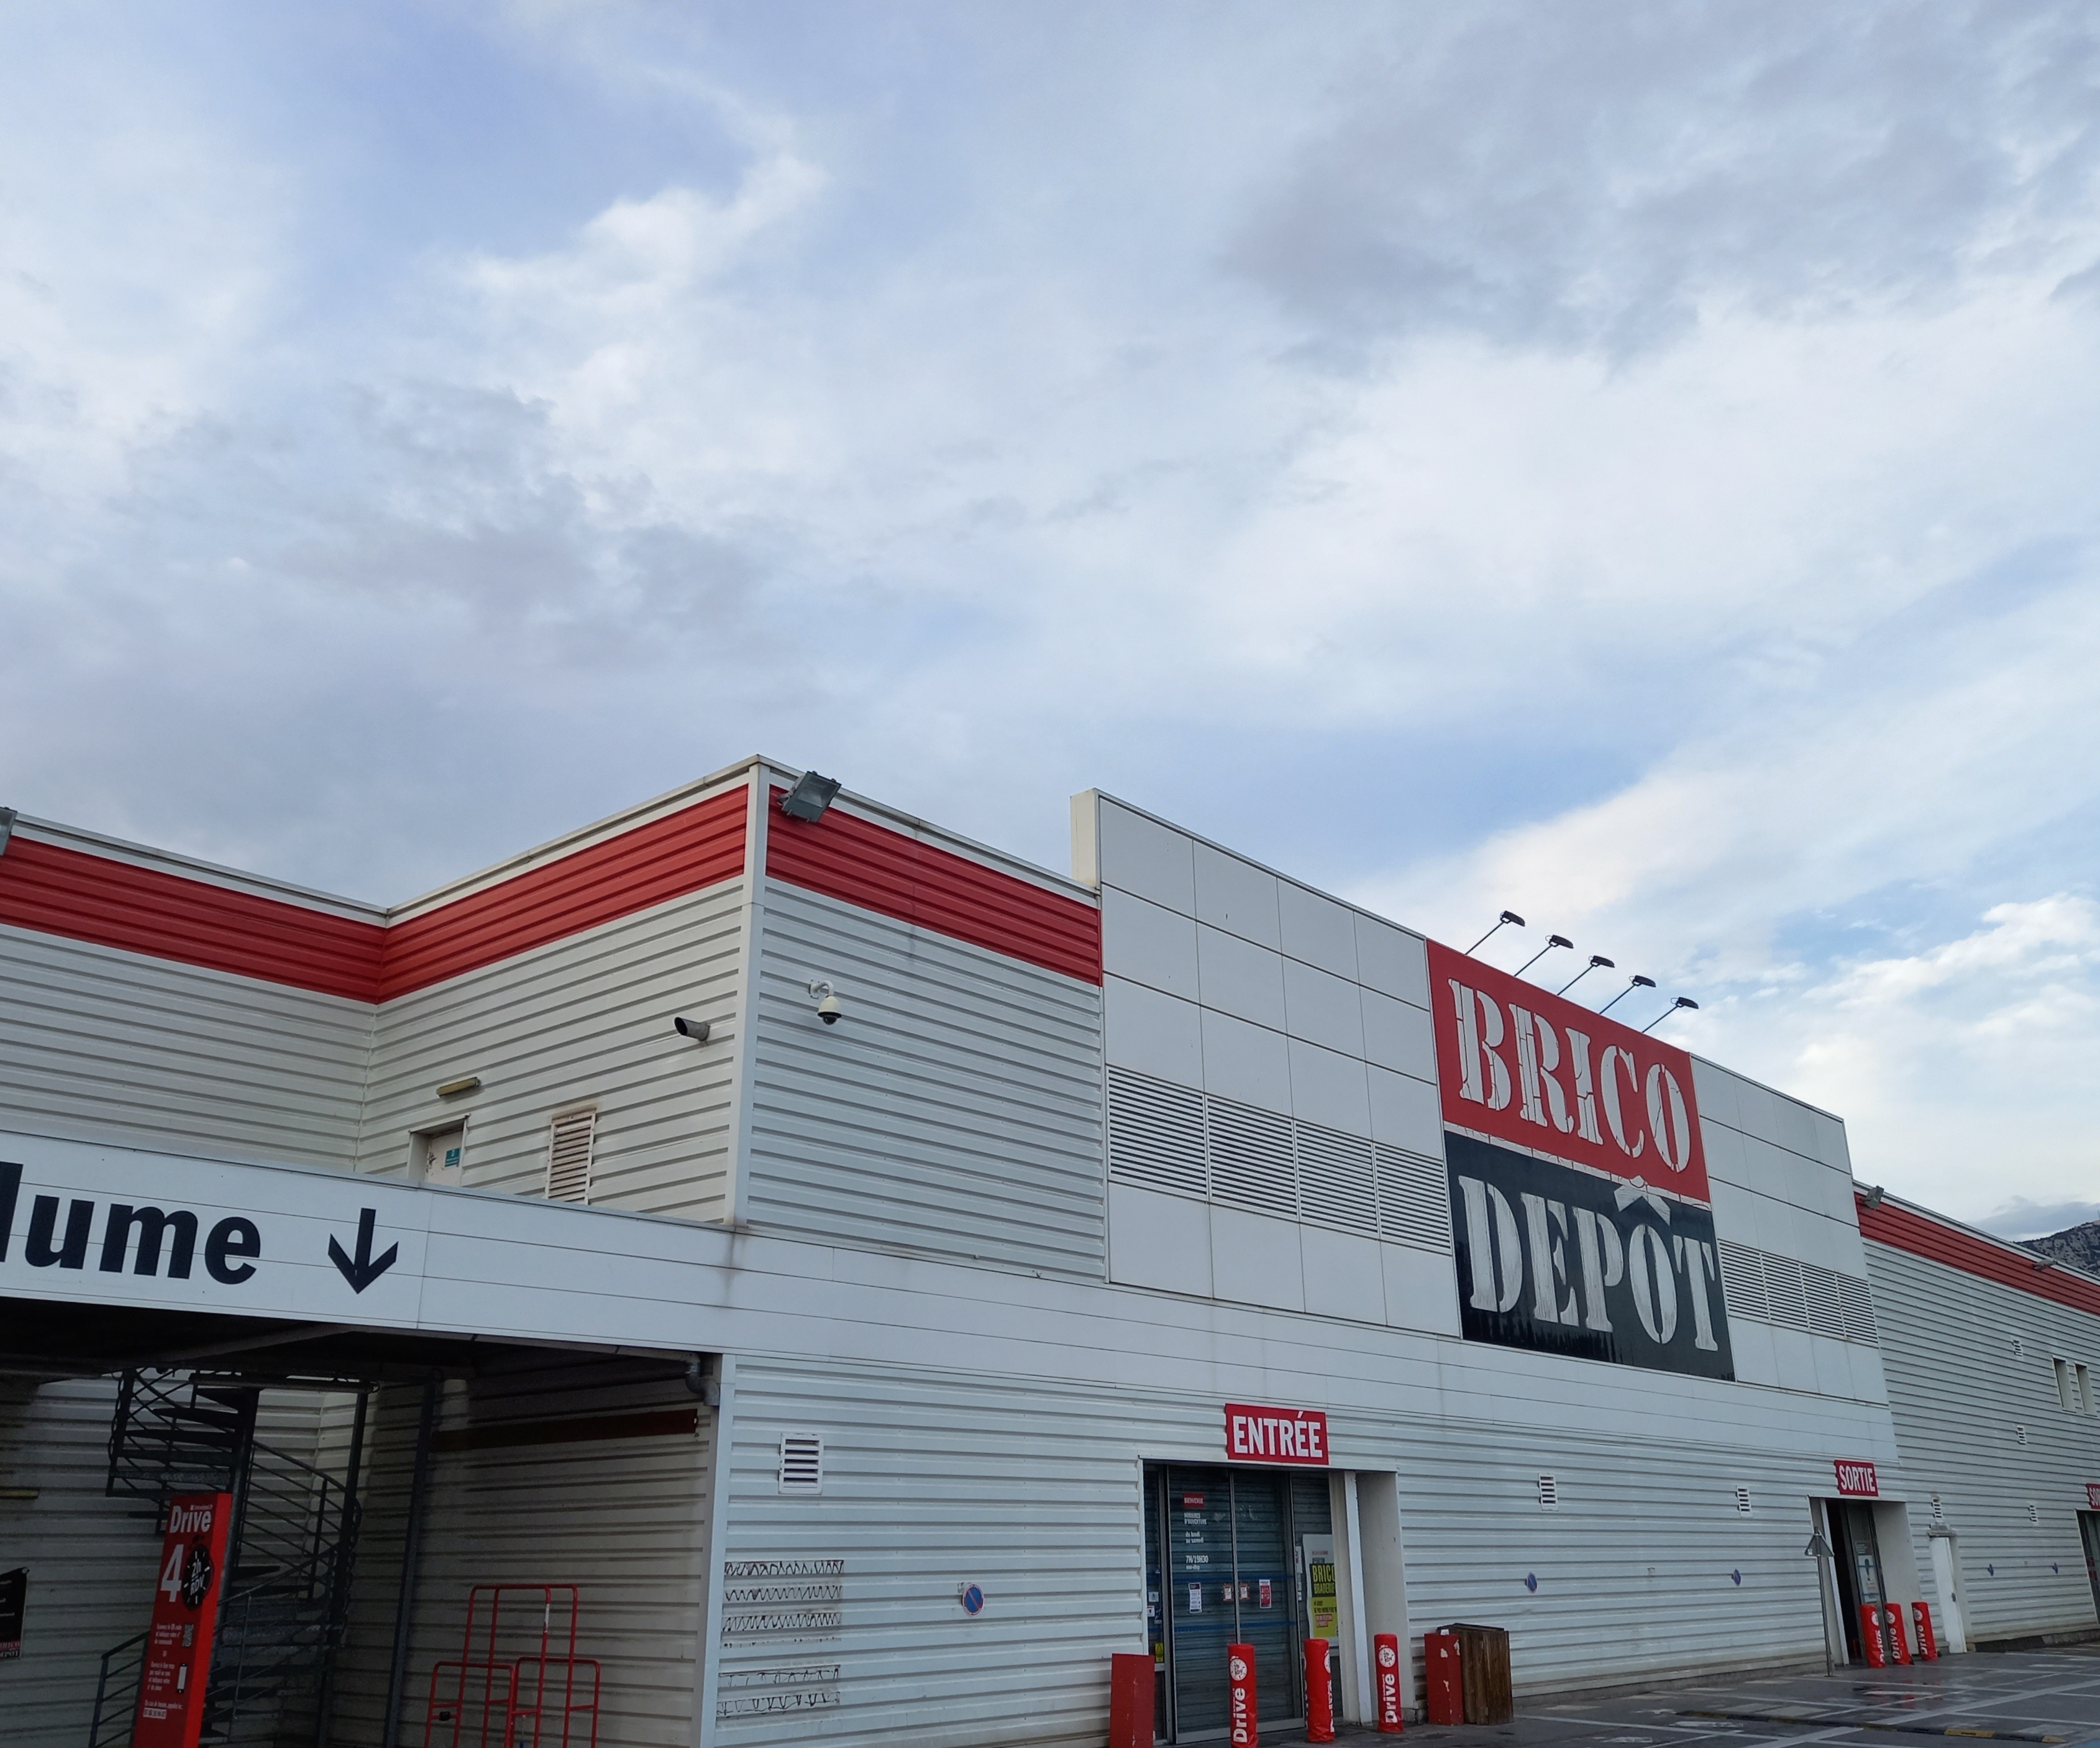 Horaire brico depot barberey saint sulpice for Brico depot charleville horaire